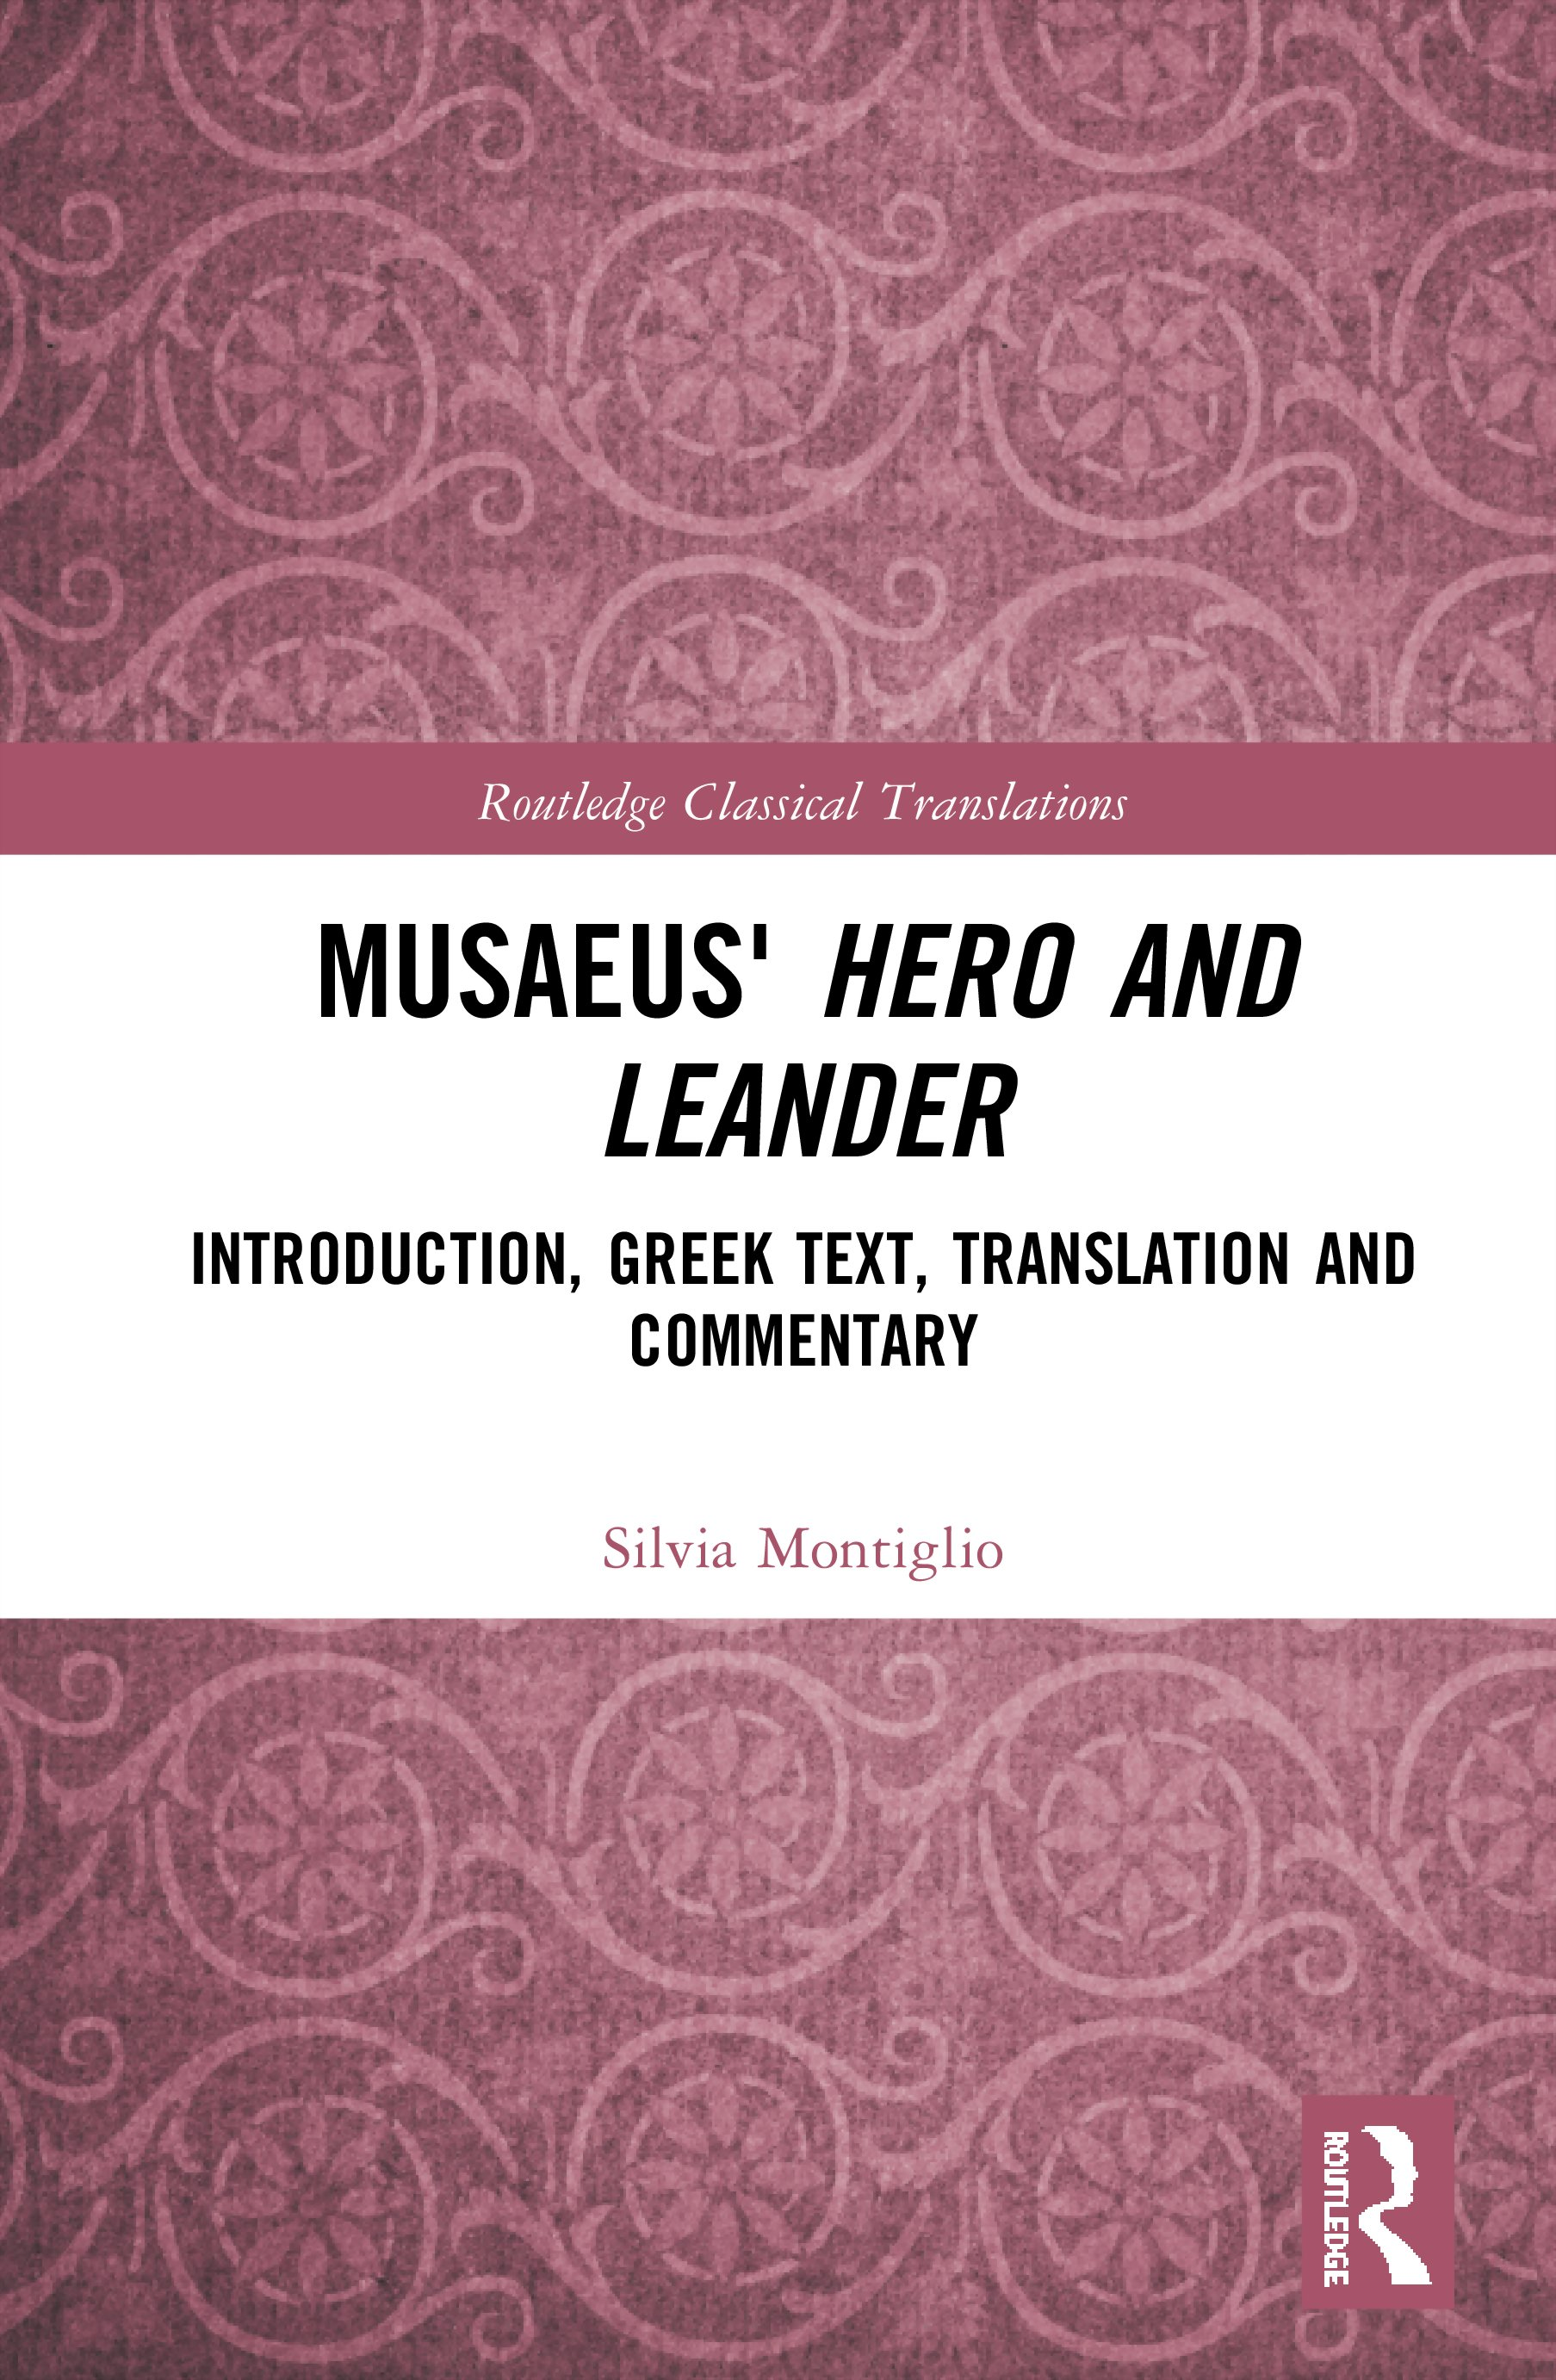 Musaeus' Hero and Leander: Introduction, Greek Text, Translation and Commentary book cover